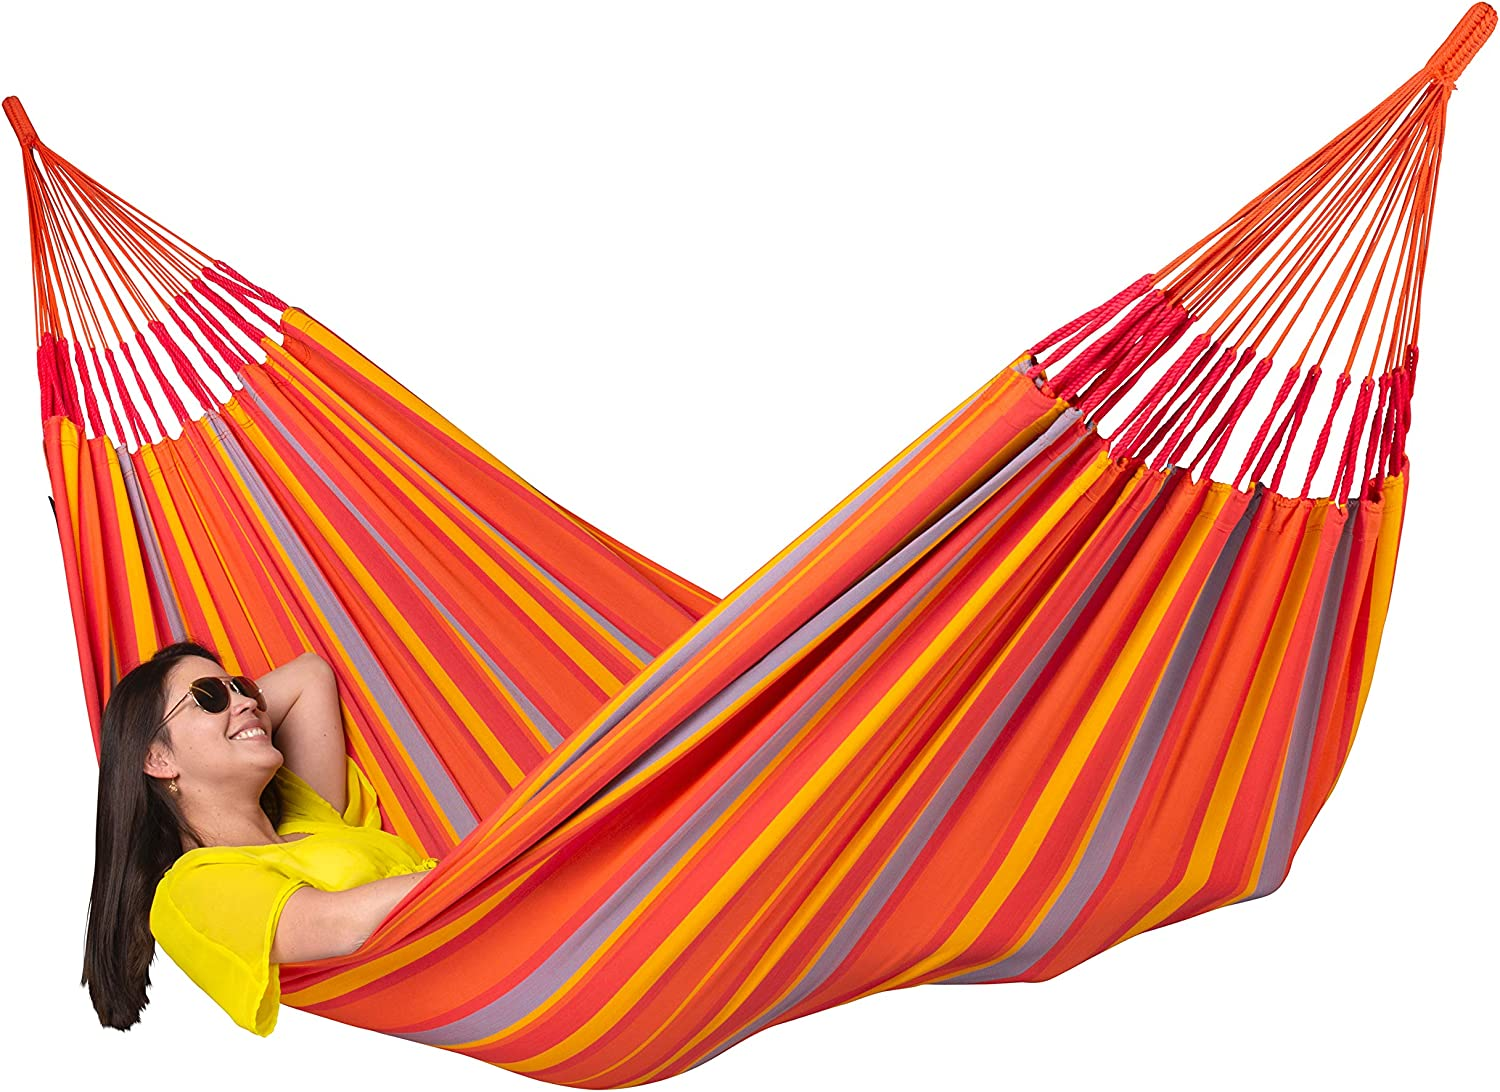 Brisa Almond Weather-Resistant LA SIESTA Outdoor Double Hammock with Sustainable Wood Arc Stand